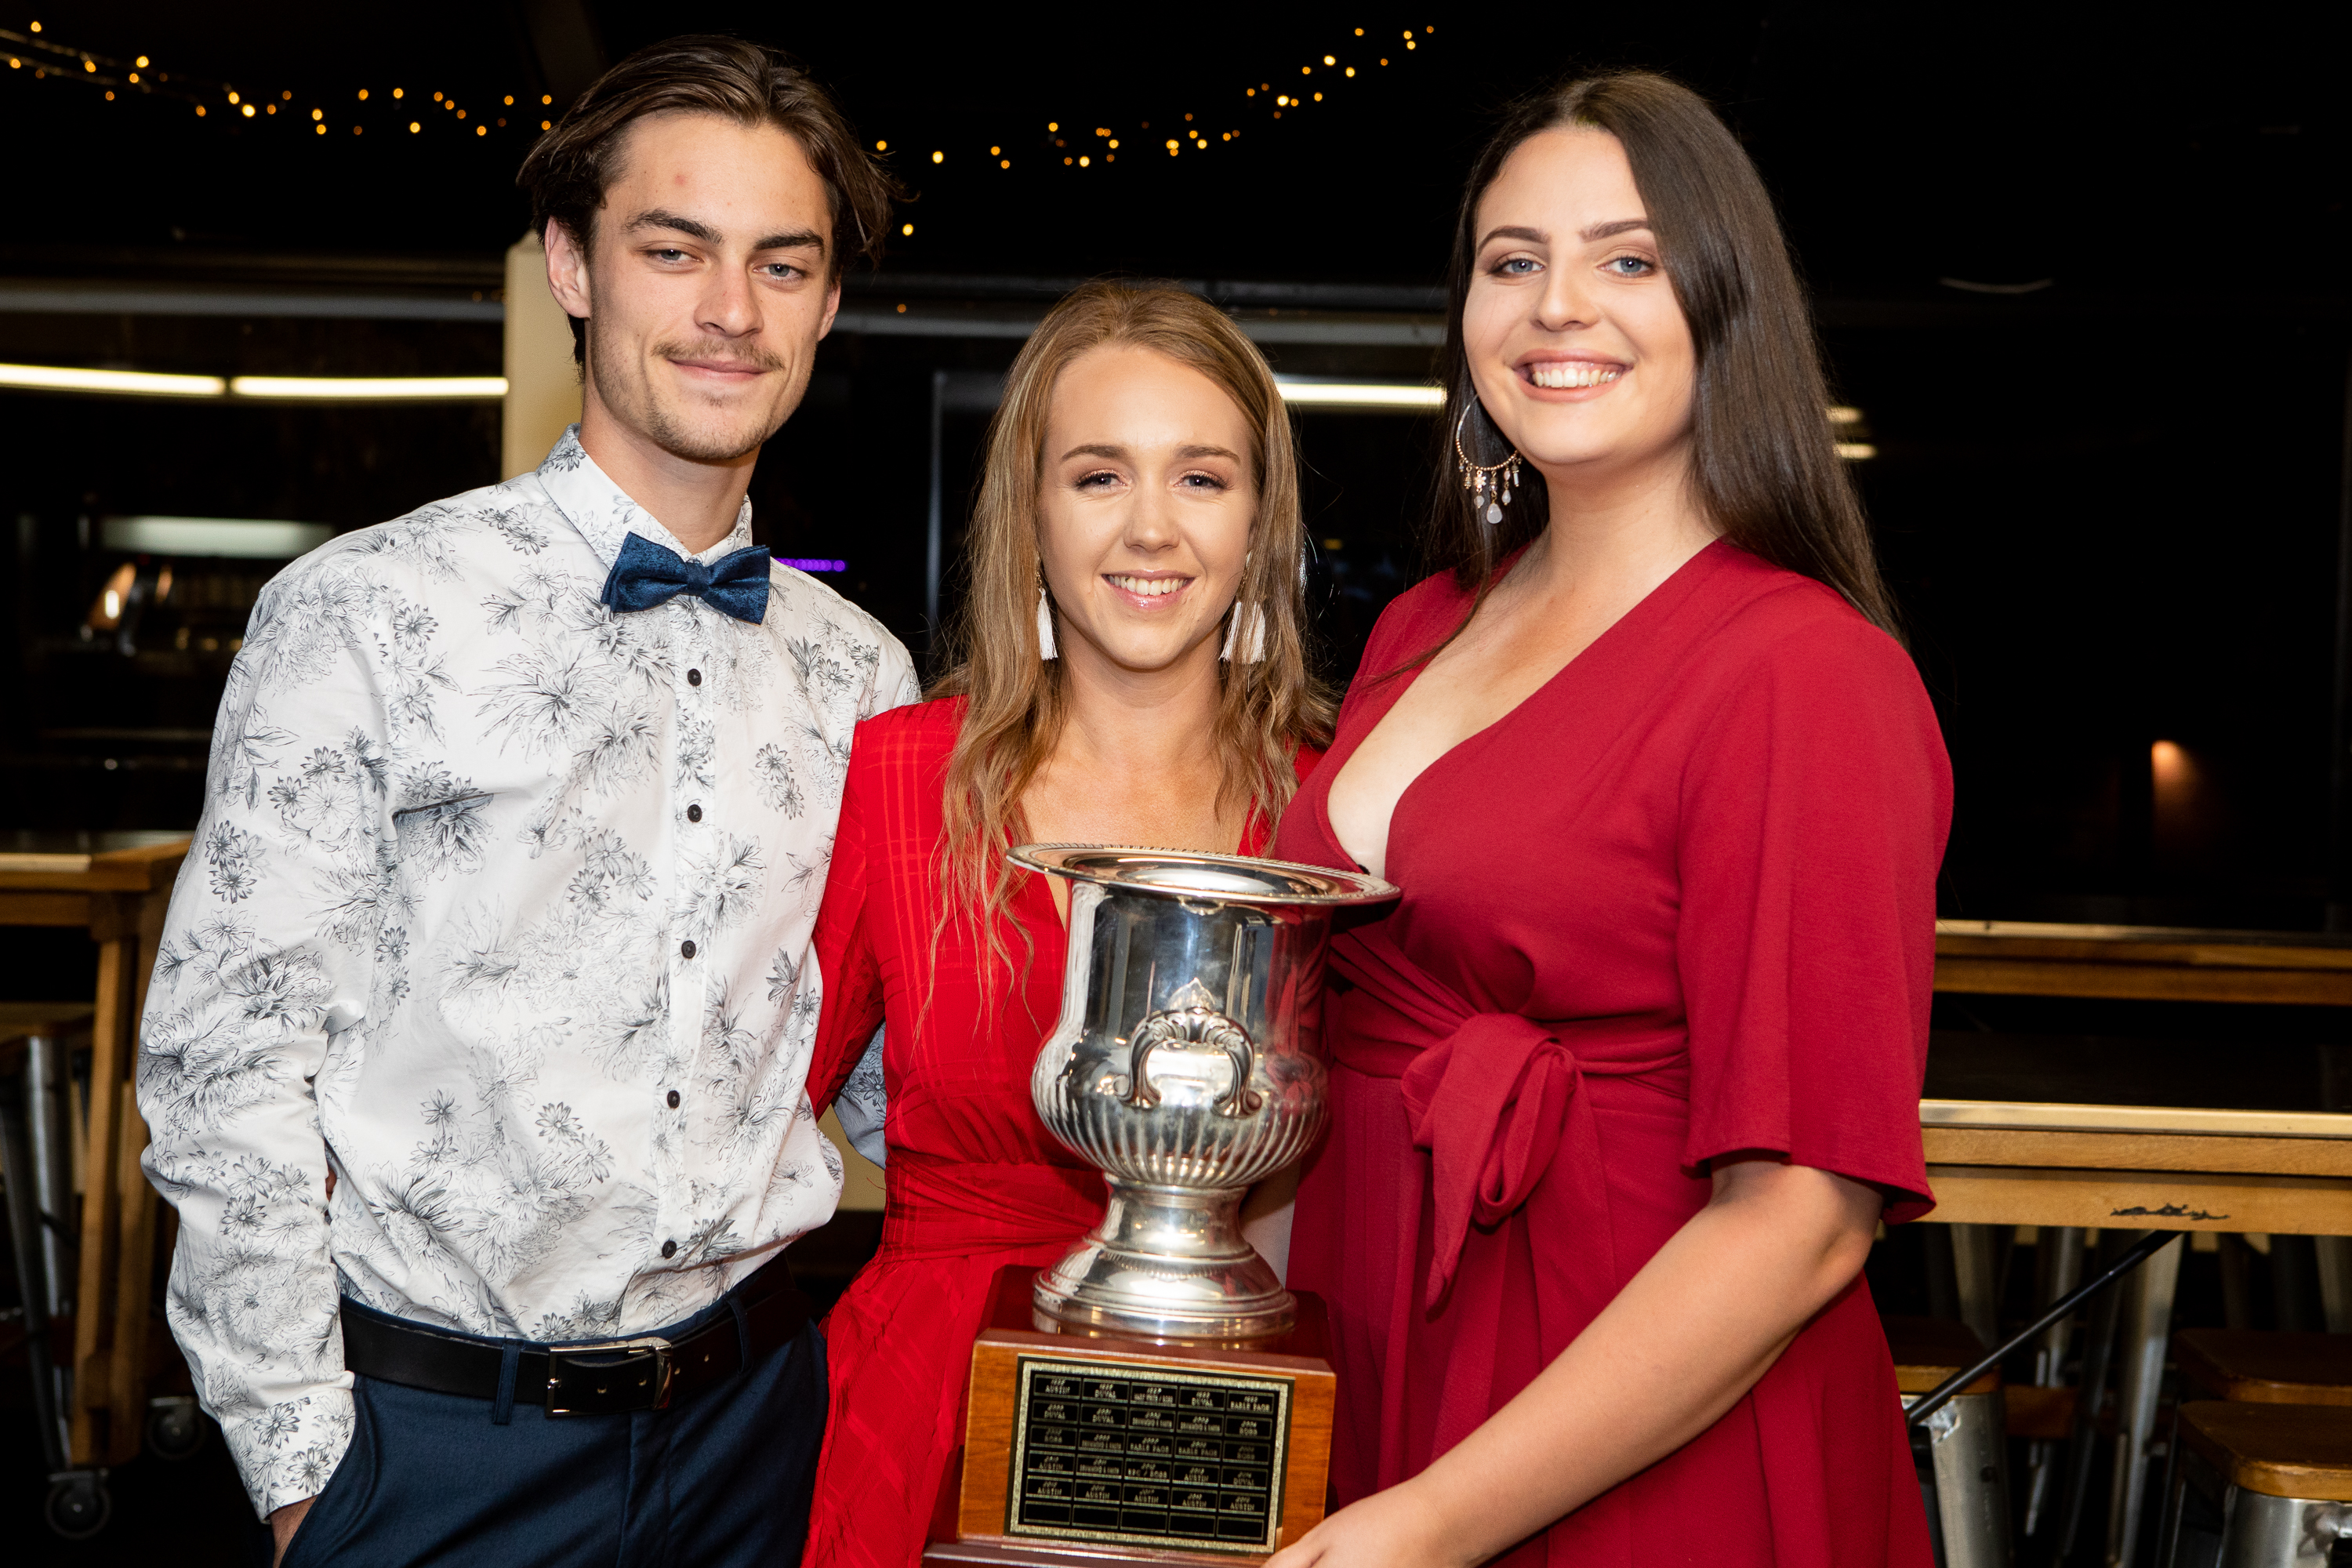 UNE Sport Awards 2019 award winners